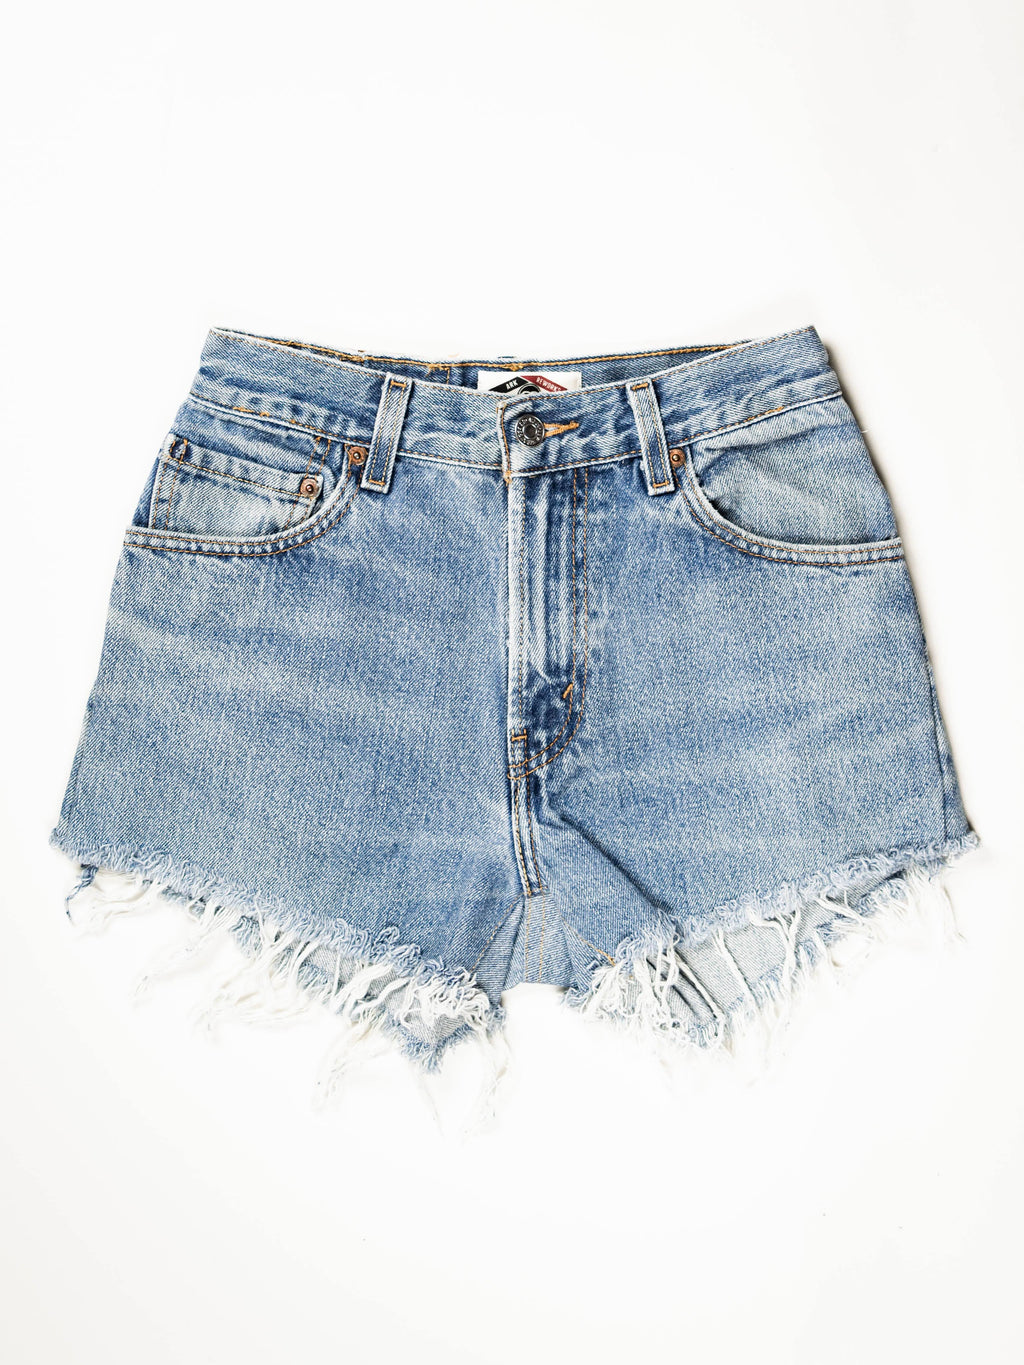 Reworked Vintage Cutoff Levi Jean Short - 26